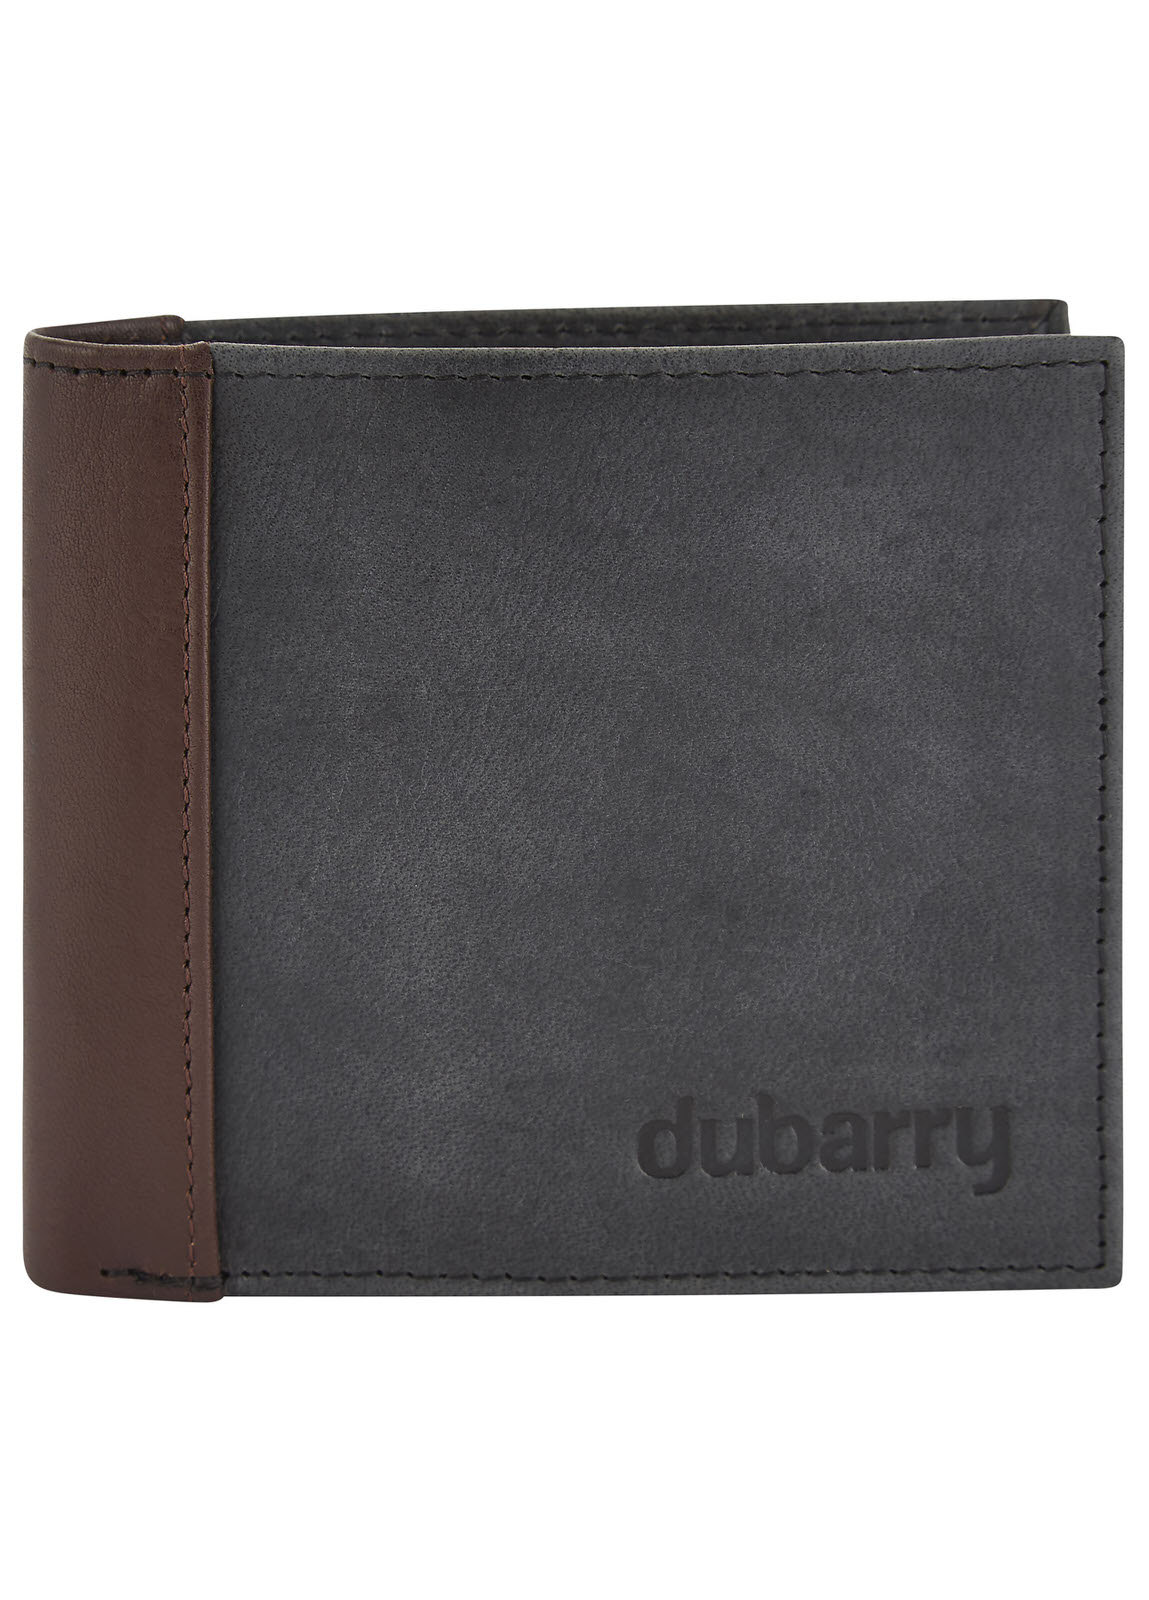 Rosmuc_Leather_Wallet_Black/Brown_Image_1